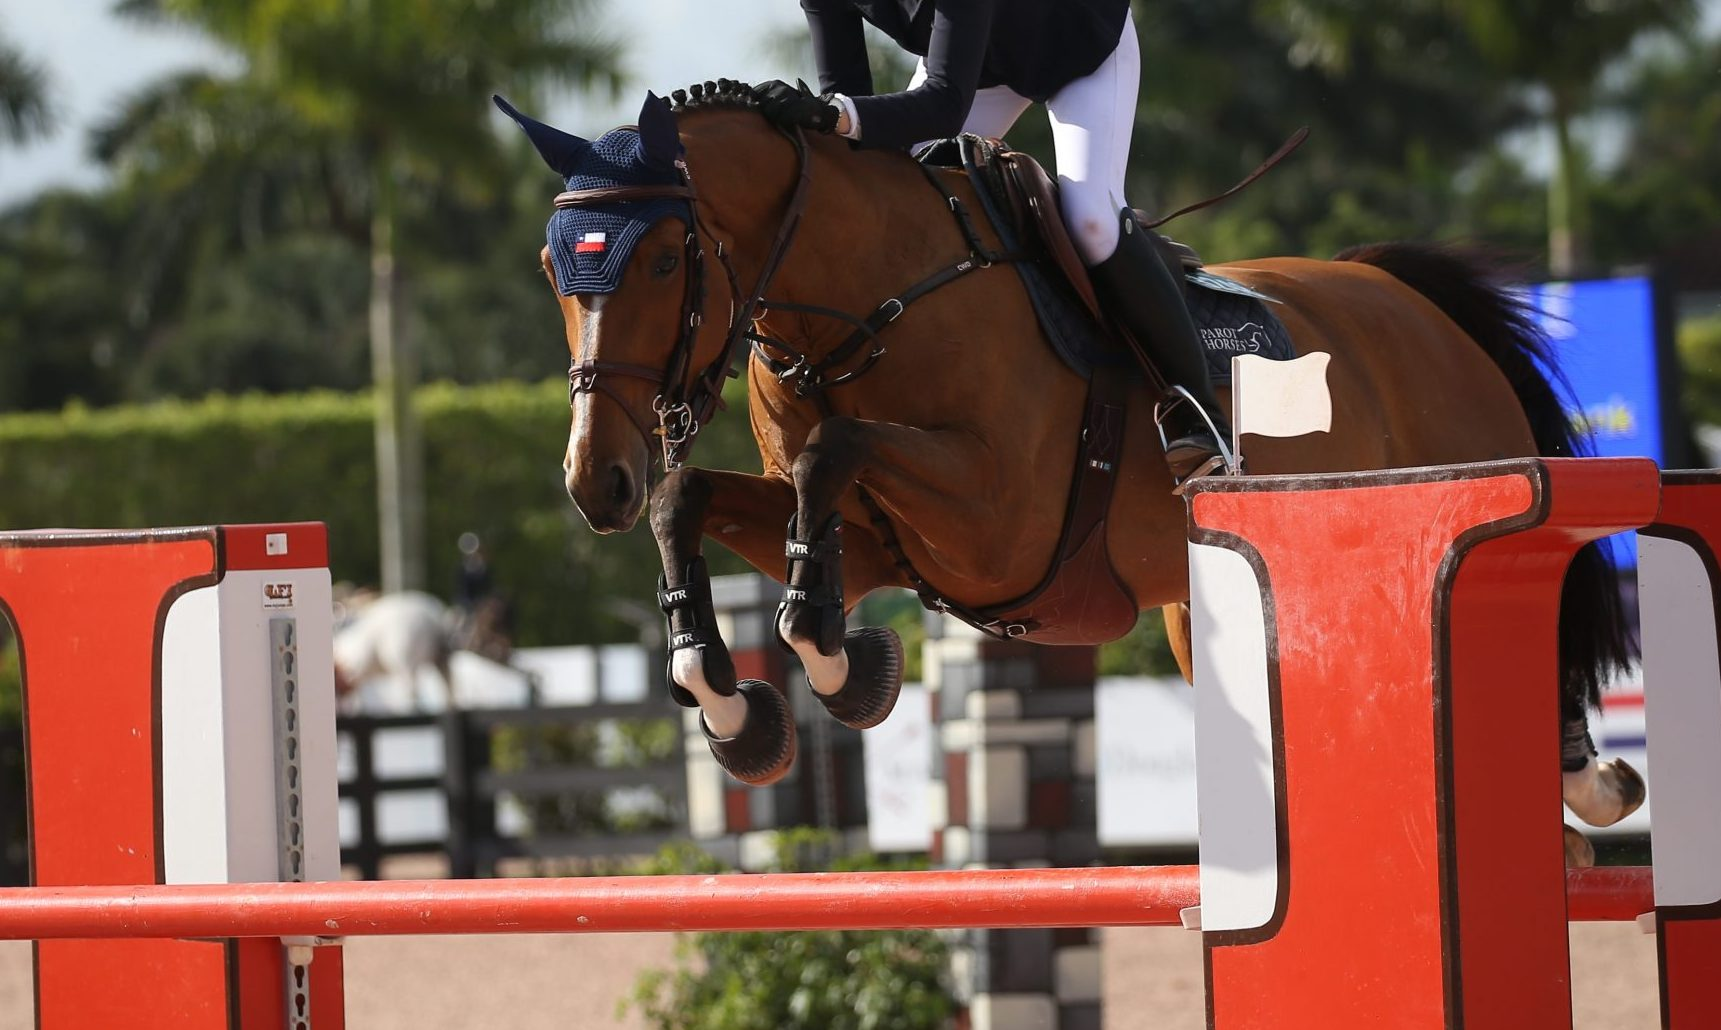 3rd place for Bahira S in the 1.35m Jumper class at Silver Oak Tournament